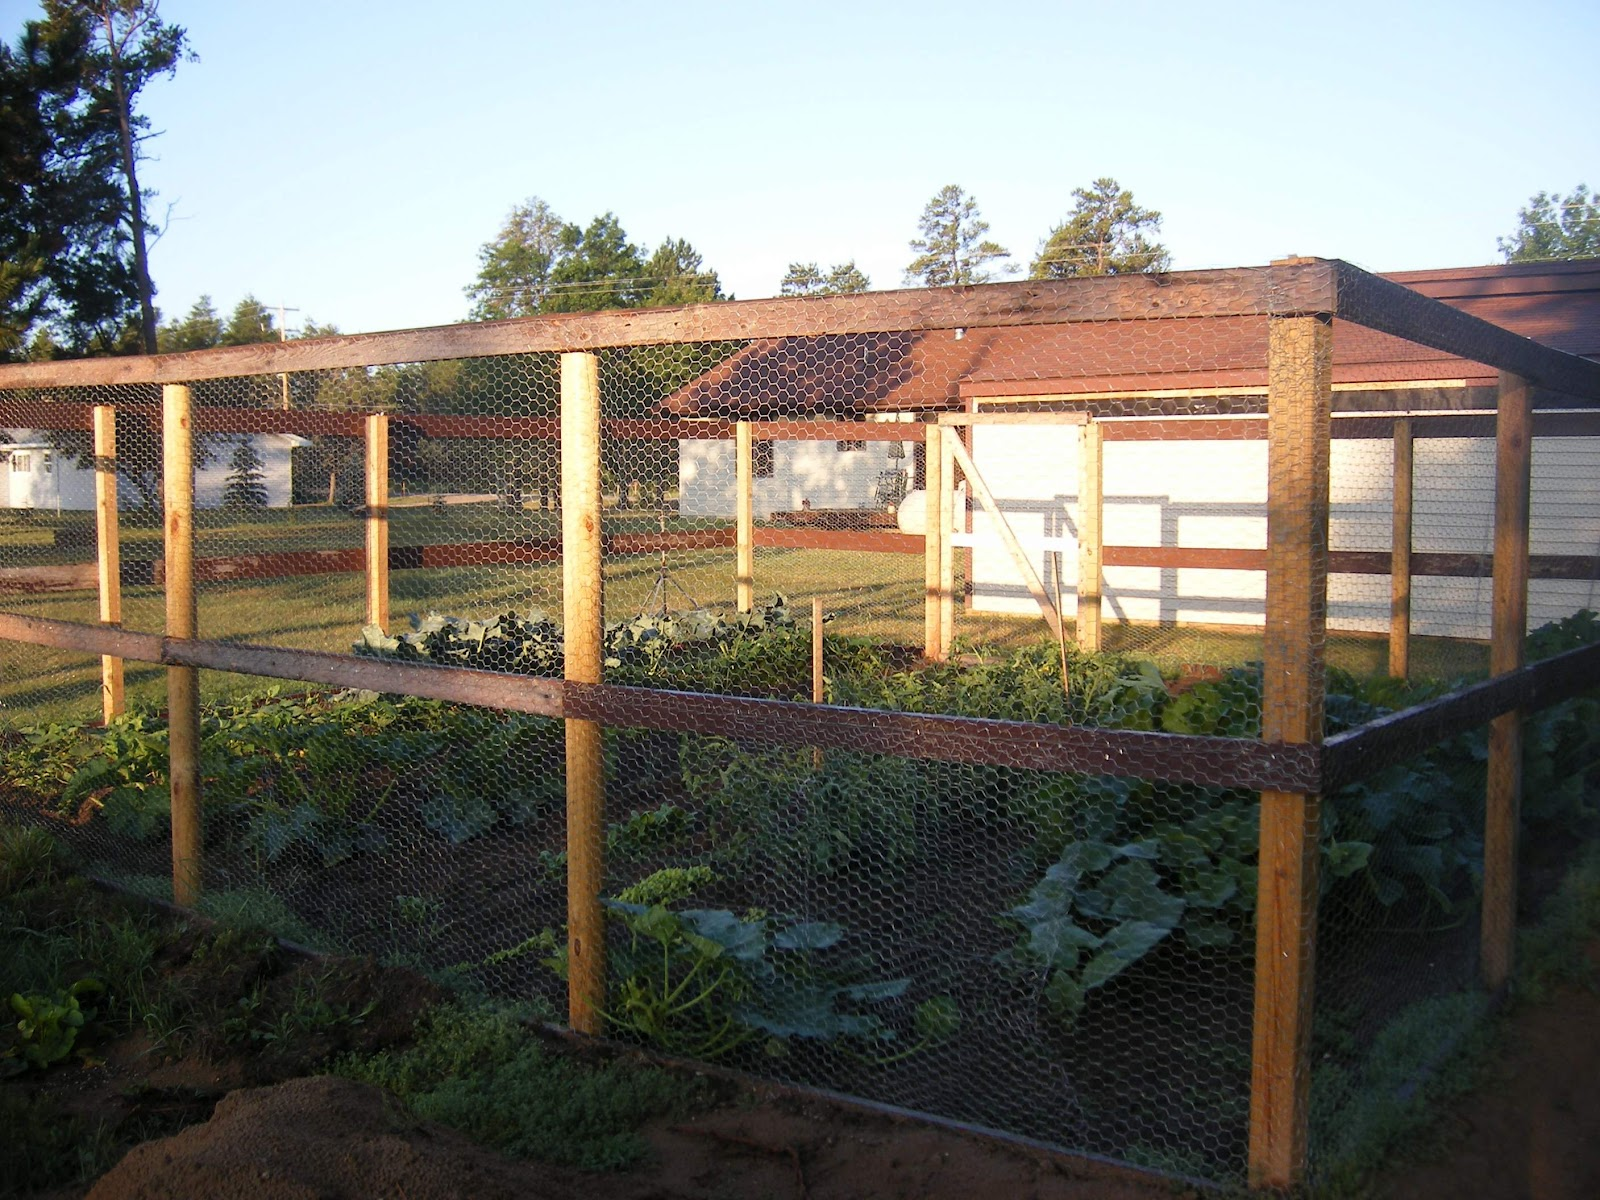 Two Men And A Little Farm: FENCE STYLES FOR THE GARDEN